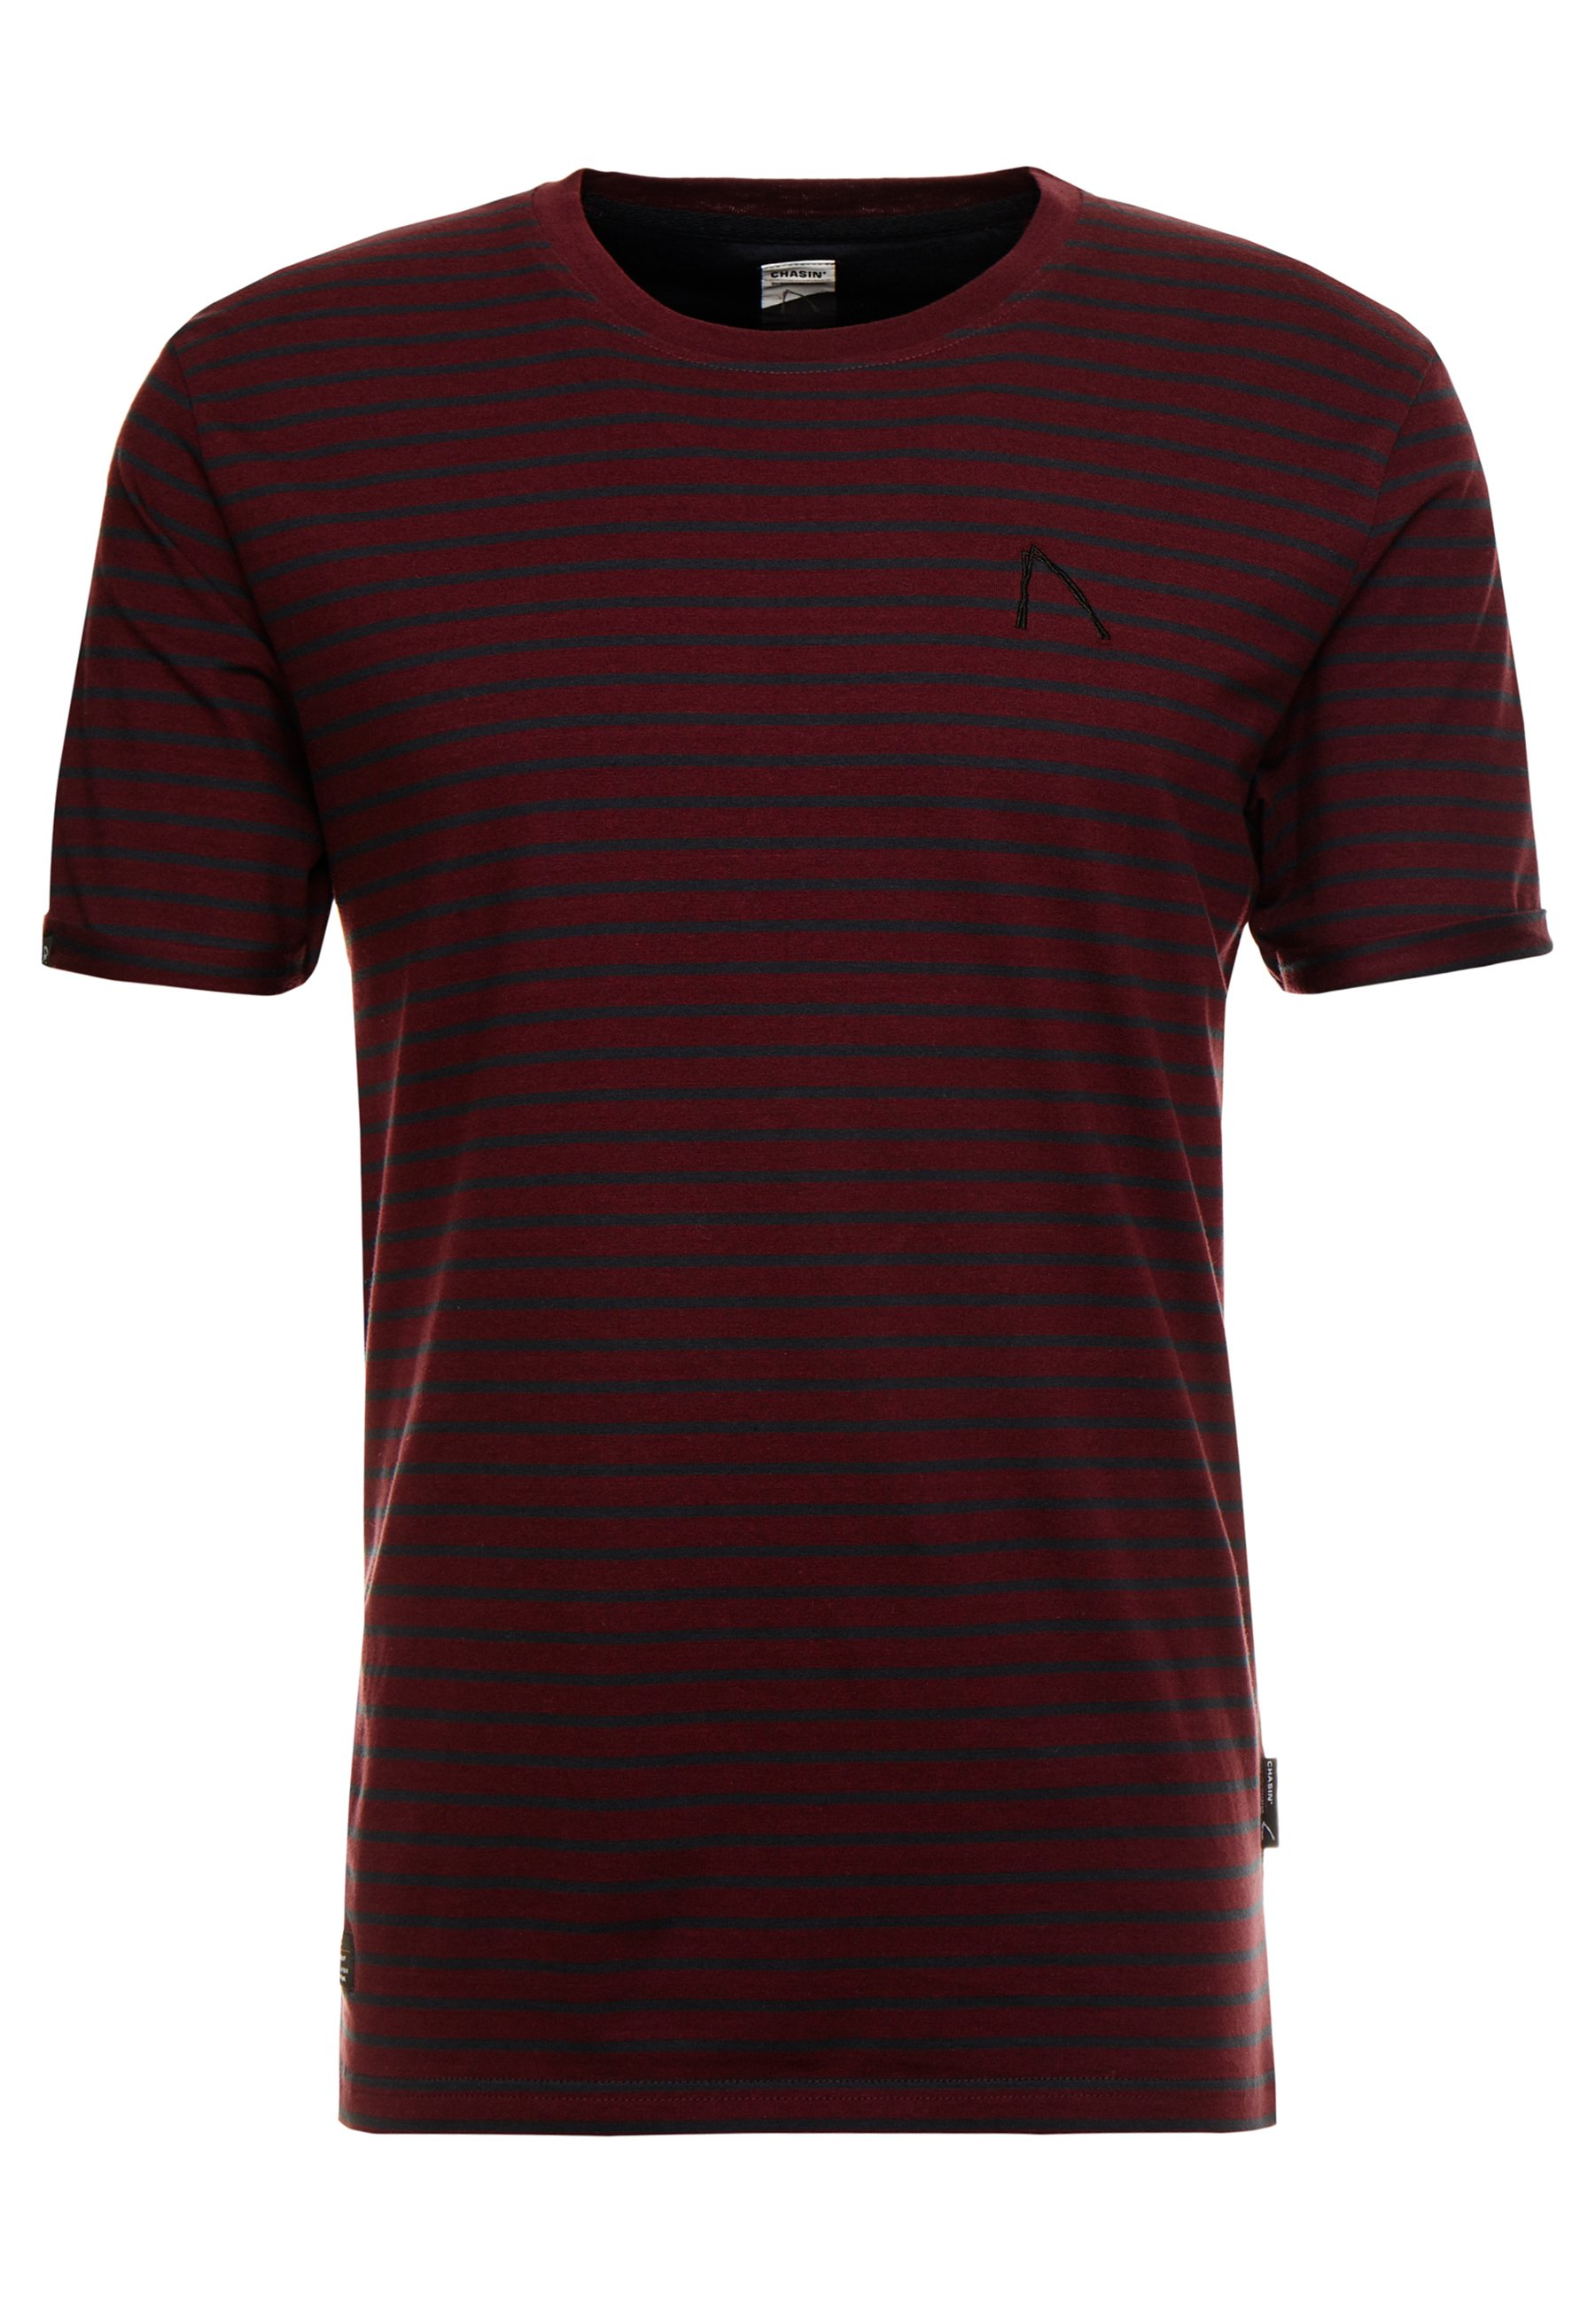 Chasin' ShoreT shirt Imprimé Burgundy ShoreT shirt Chasin' 3A5RjLq4